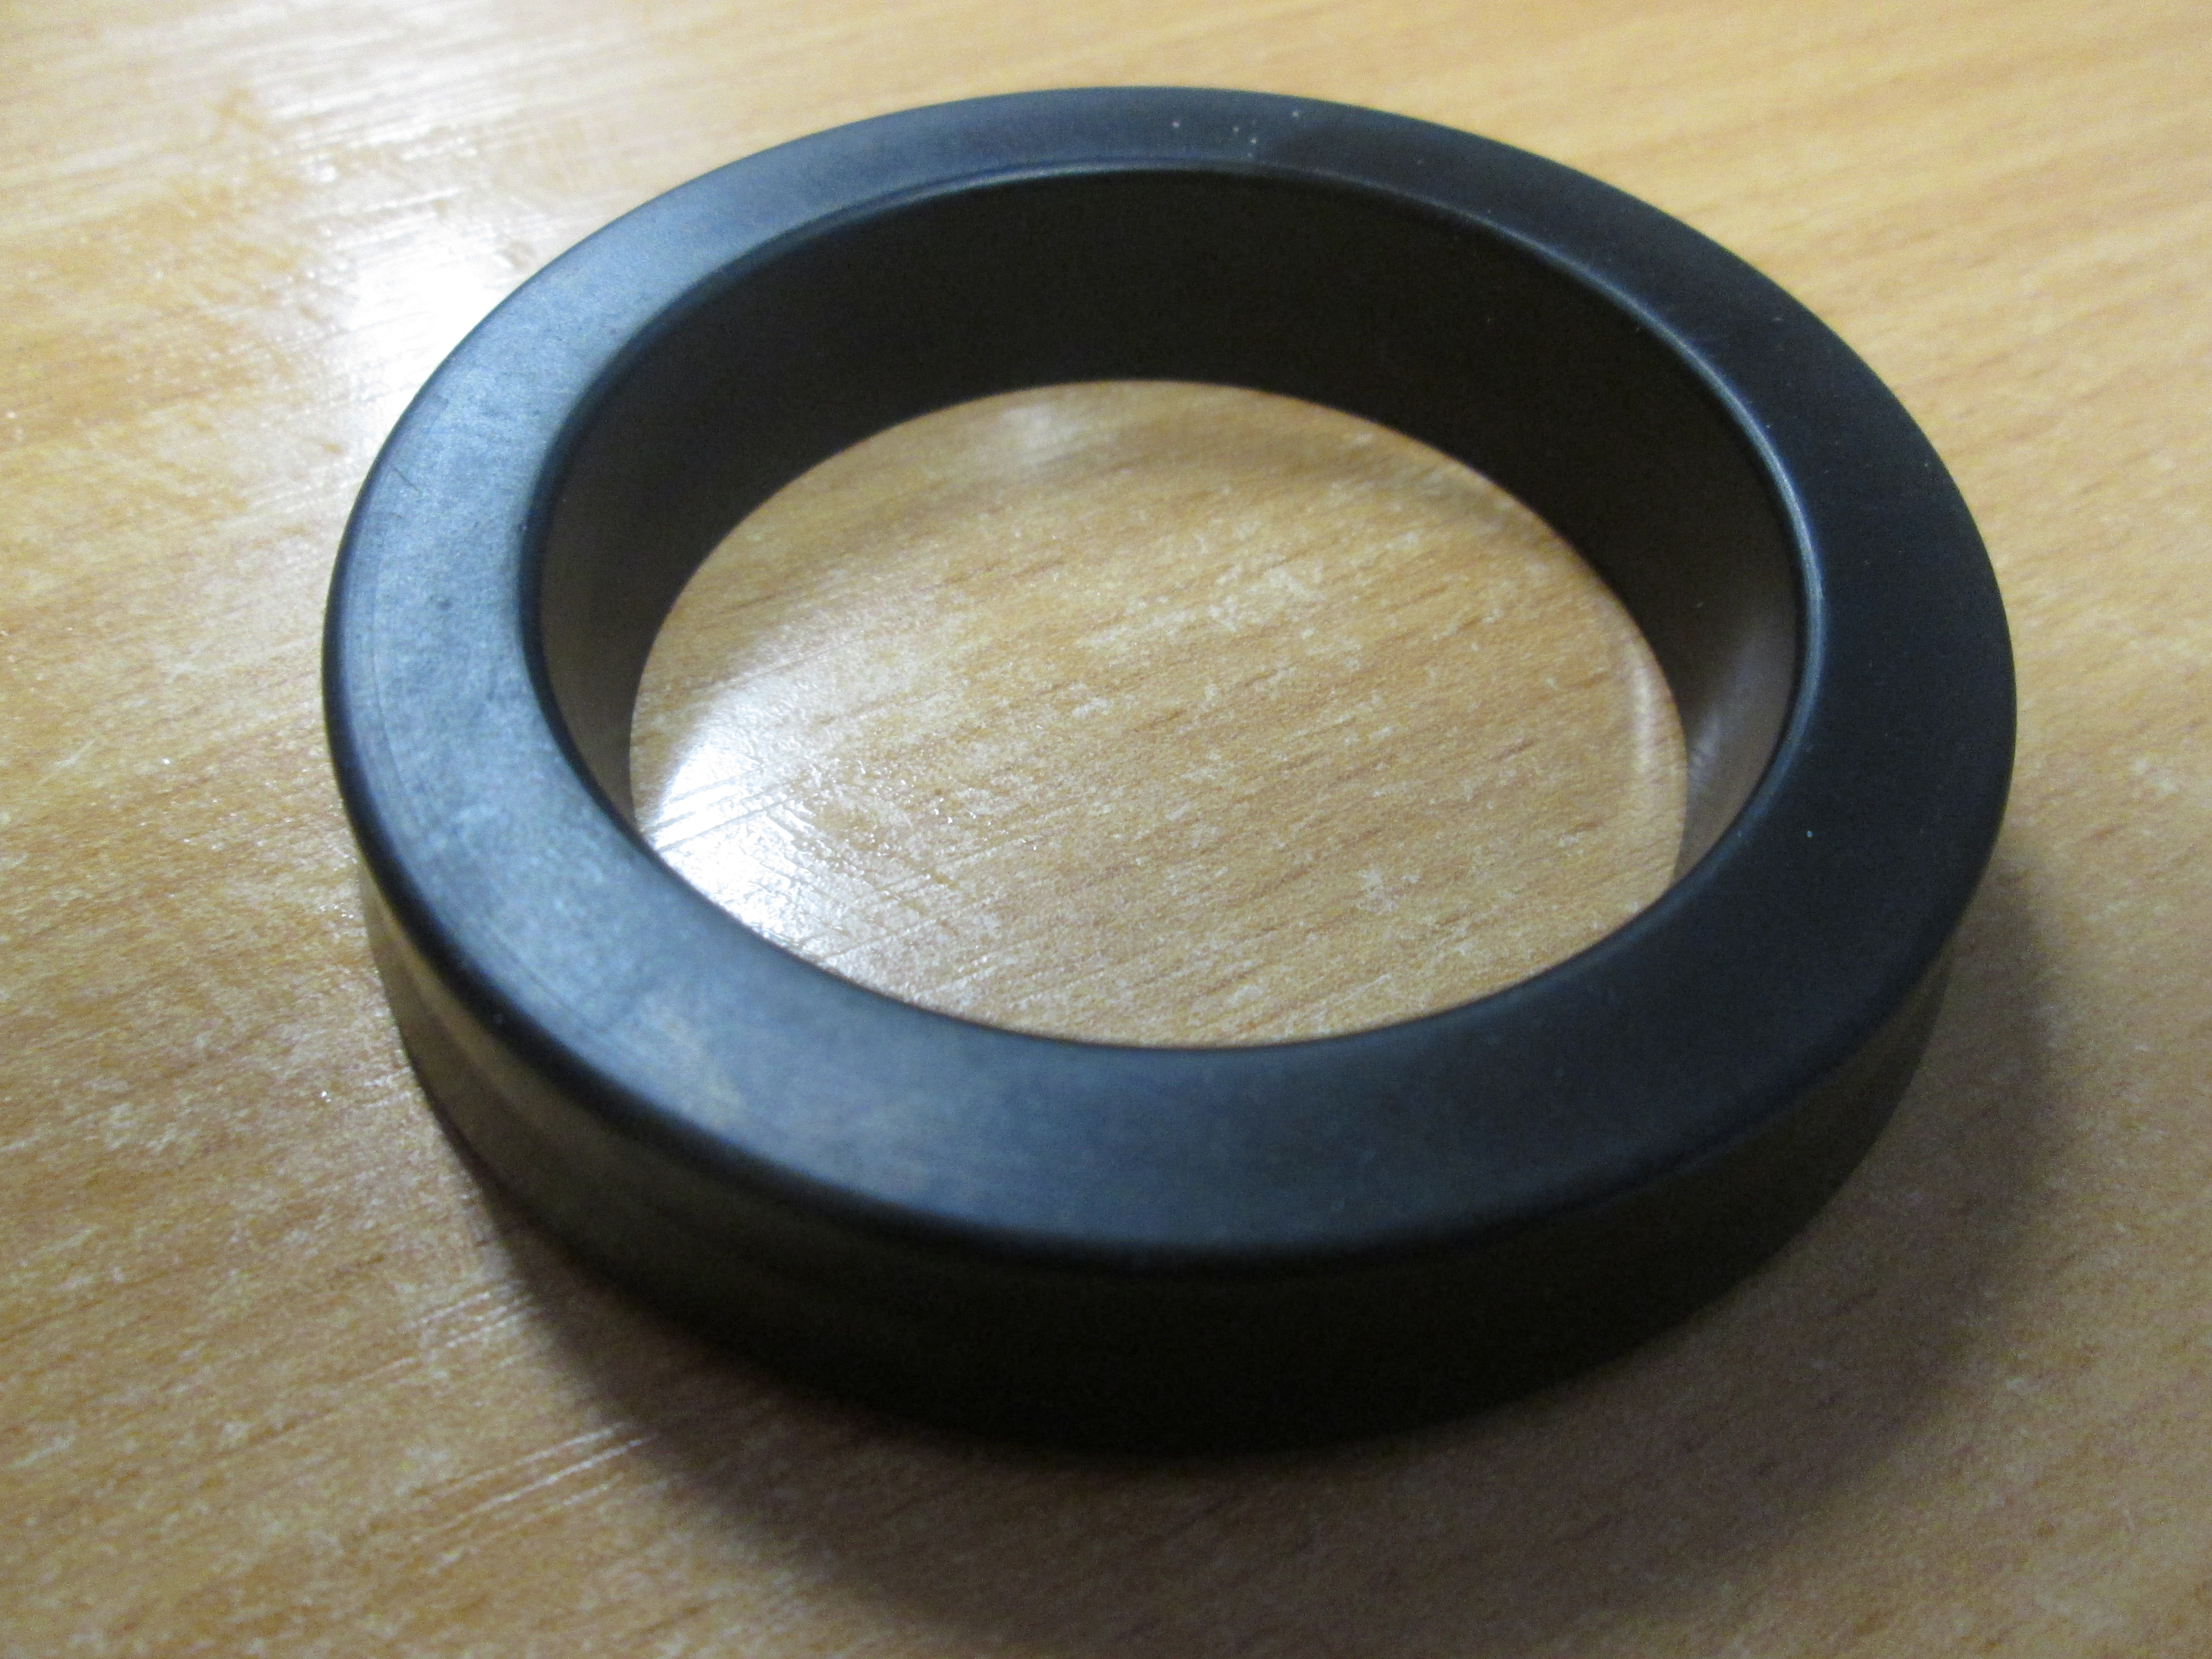 External Distributor Seal, Imperial 1.1/8inch x 1.3/4inch x 3/8